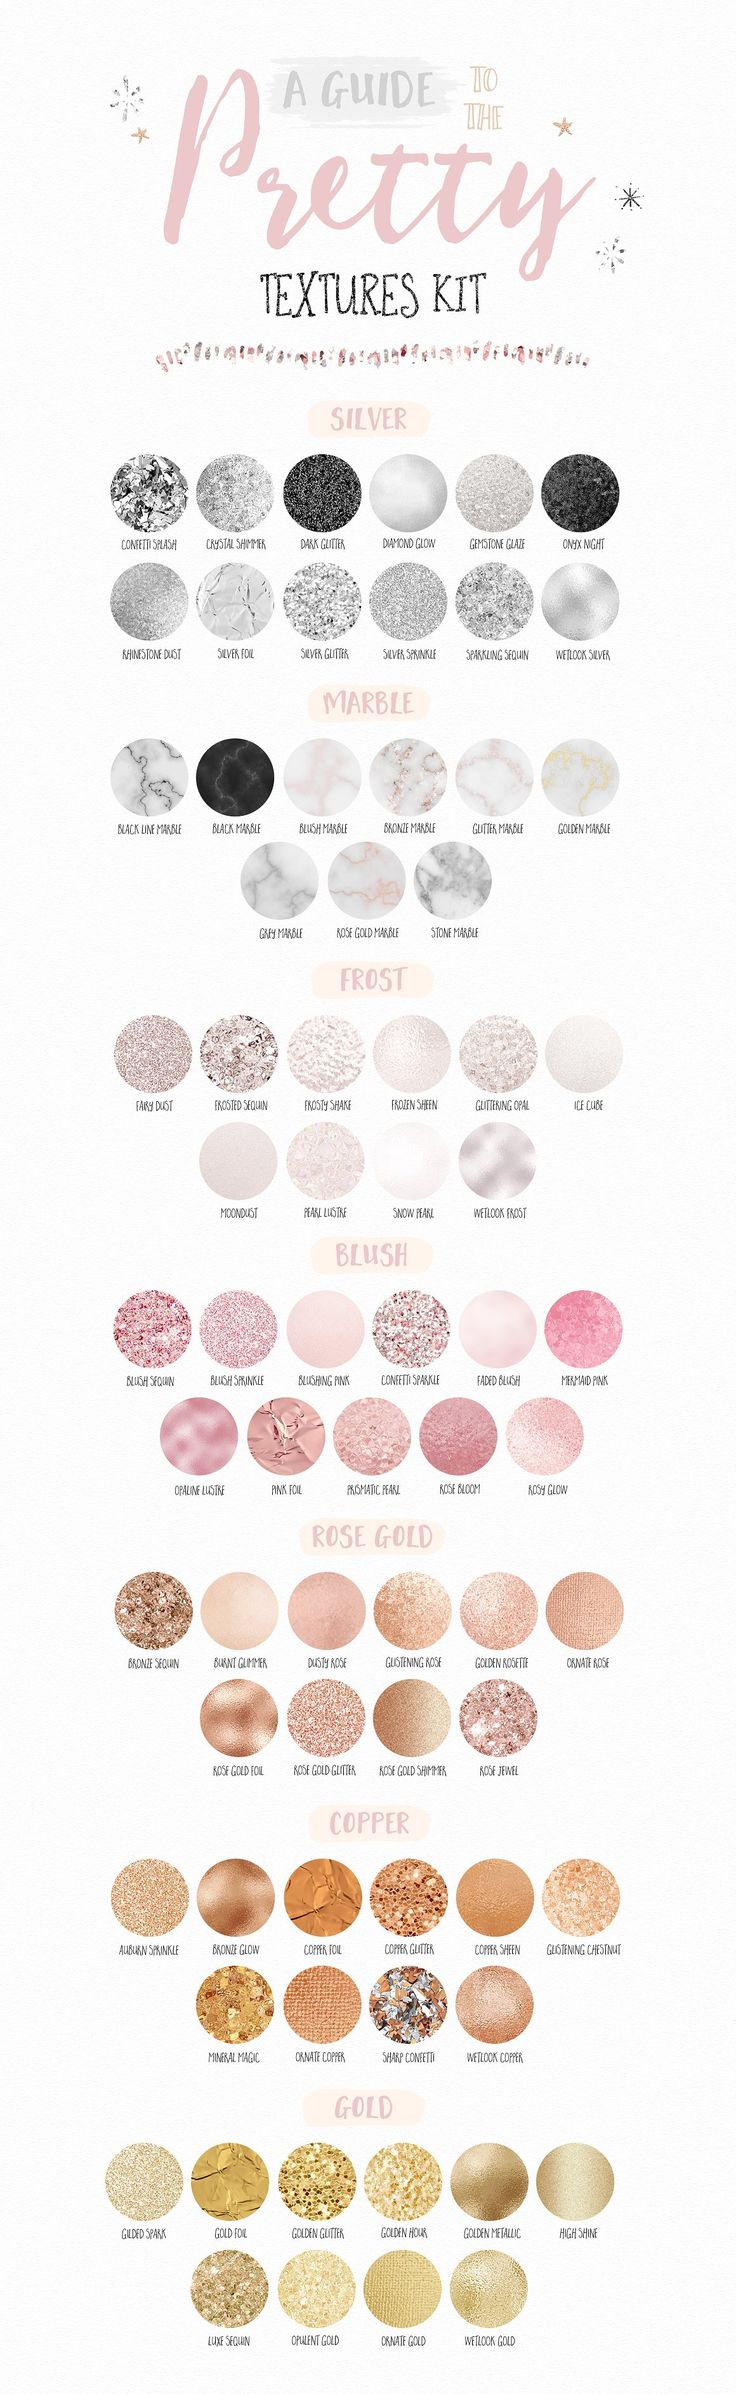 A guide to the Pretty Textures Kit | Download textures in silver, marble, blush, rose gold and gold to add to graphic design, logos, branding, stationery, scrapbooking, blog design, eBooks and more! Click on the image to find it at Creative Market ♥